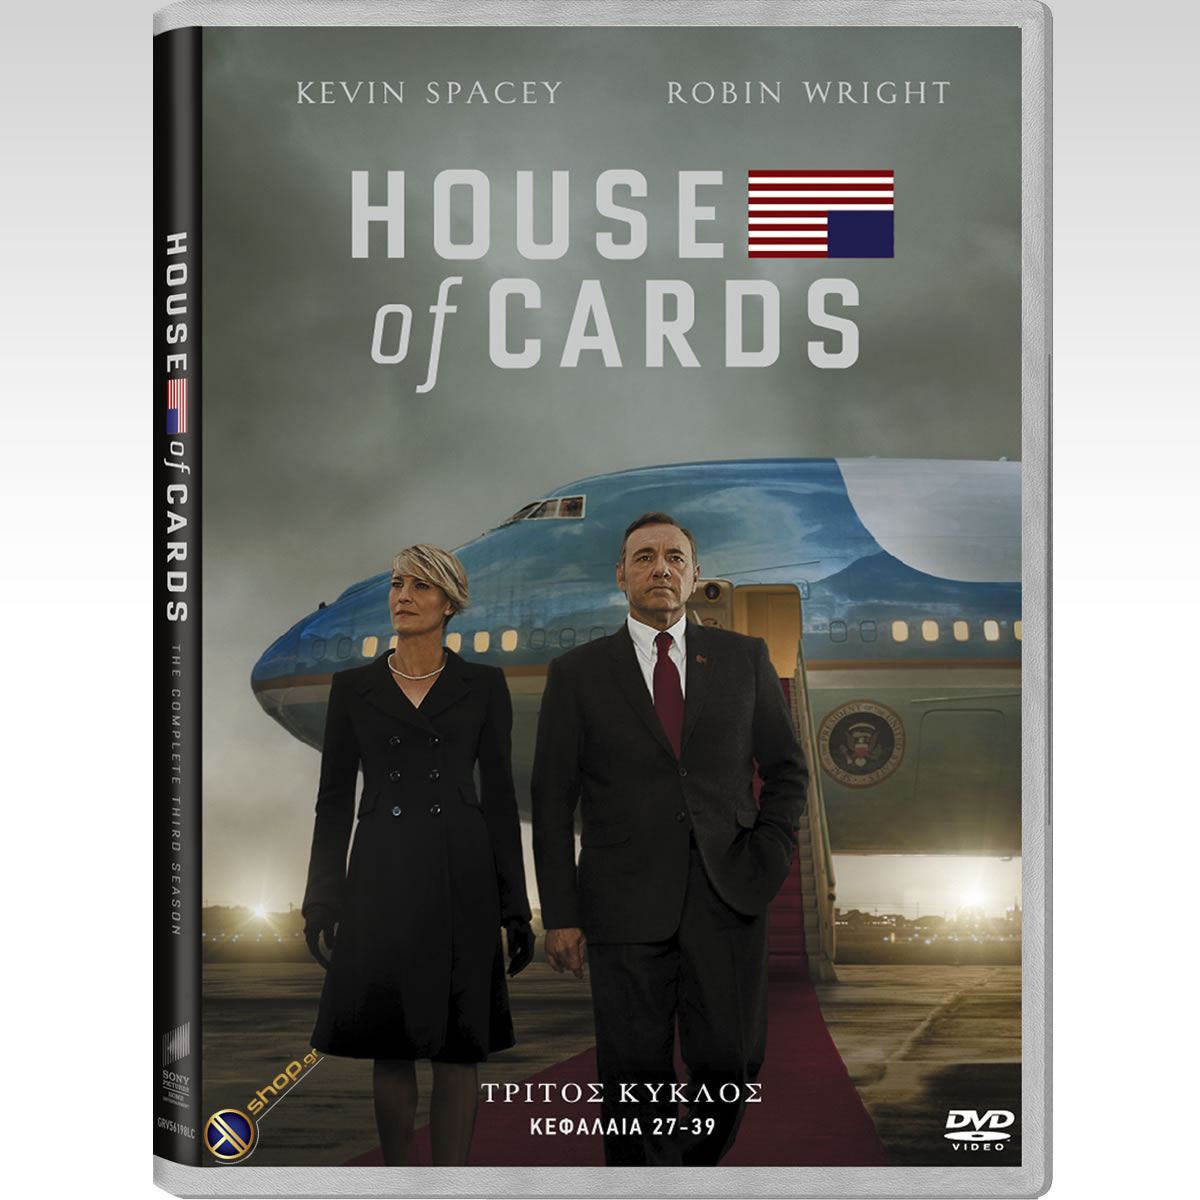 HOUSE OF CARDS Season 3 - HOUSE OF CARDS 3ος ΚΥΚΛΟΣ (4 DVDs)